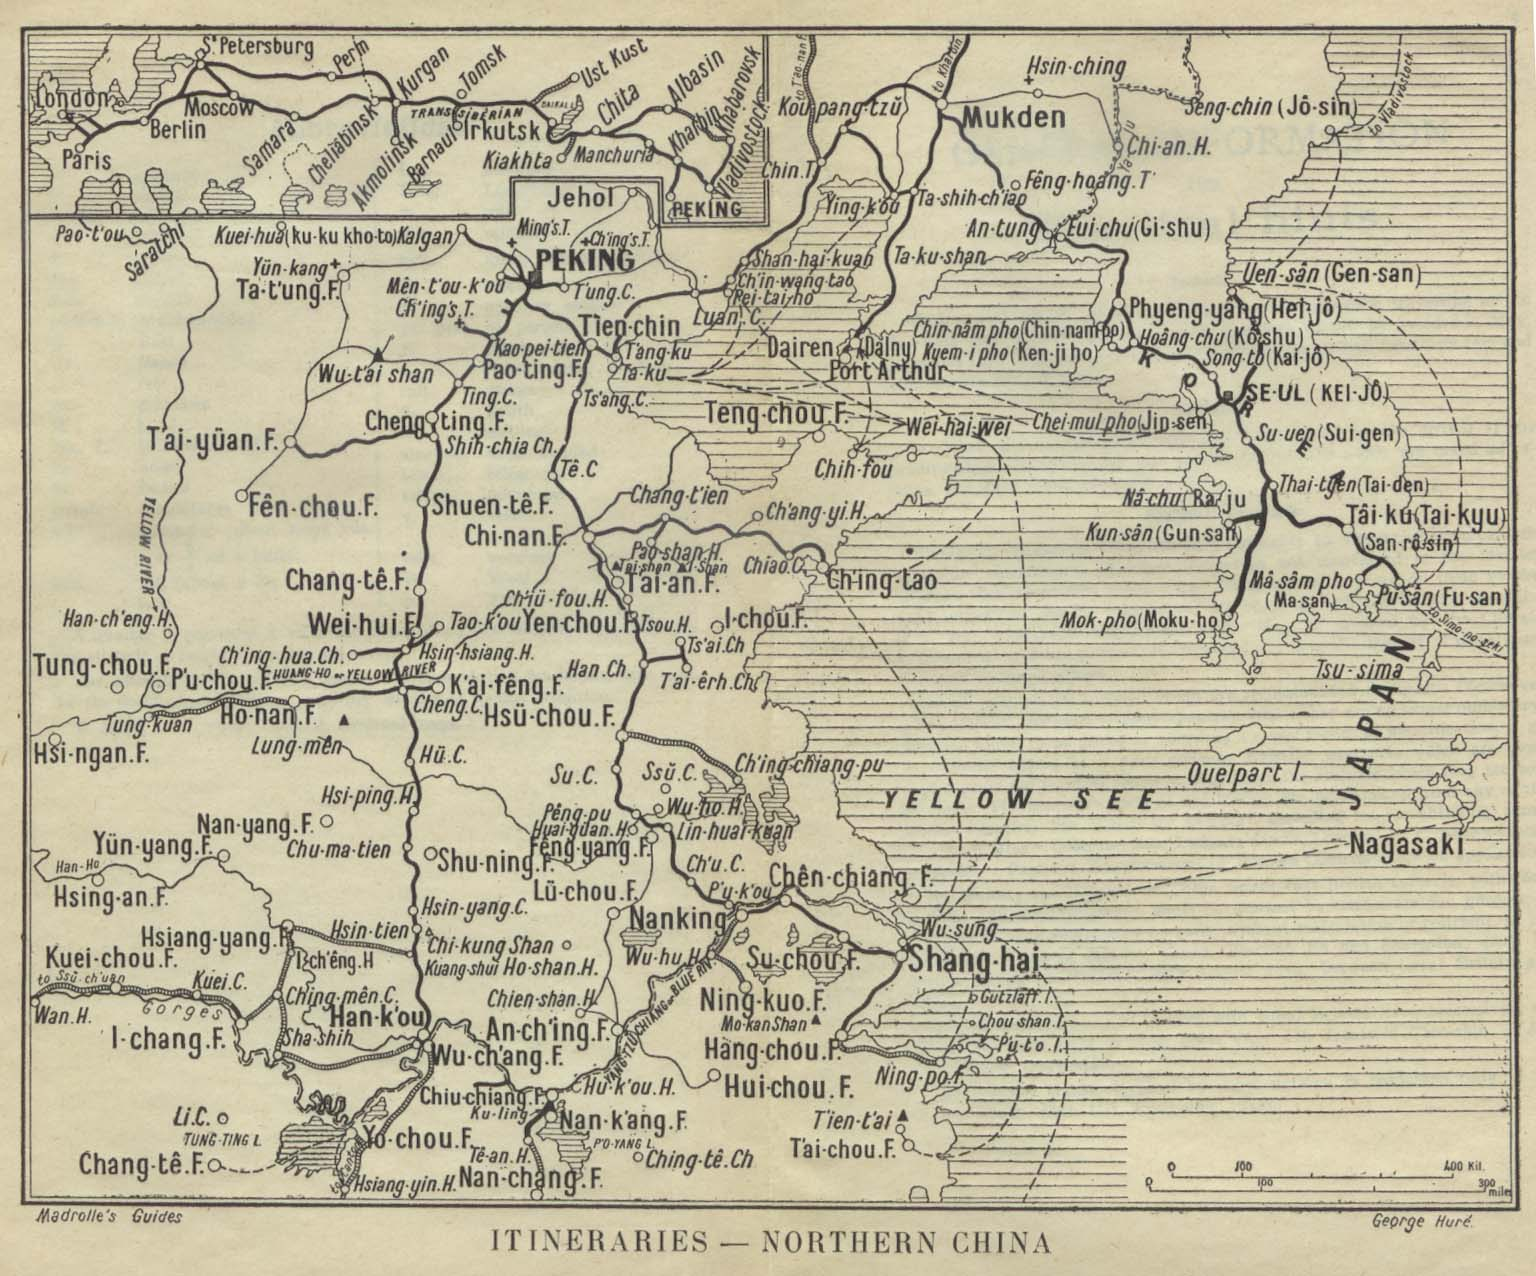 China Historical Maps PerryCastañeda Map Collection UT - China historical map 1890 1907